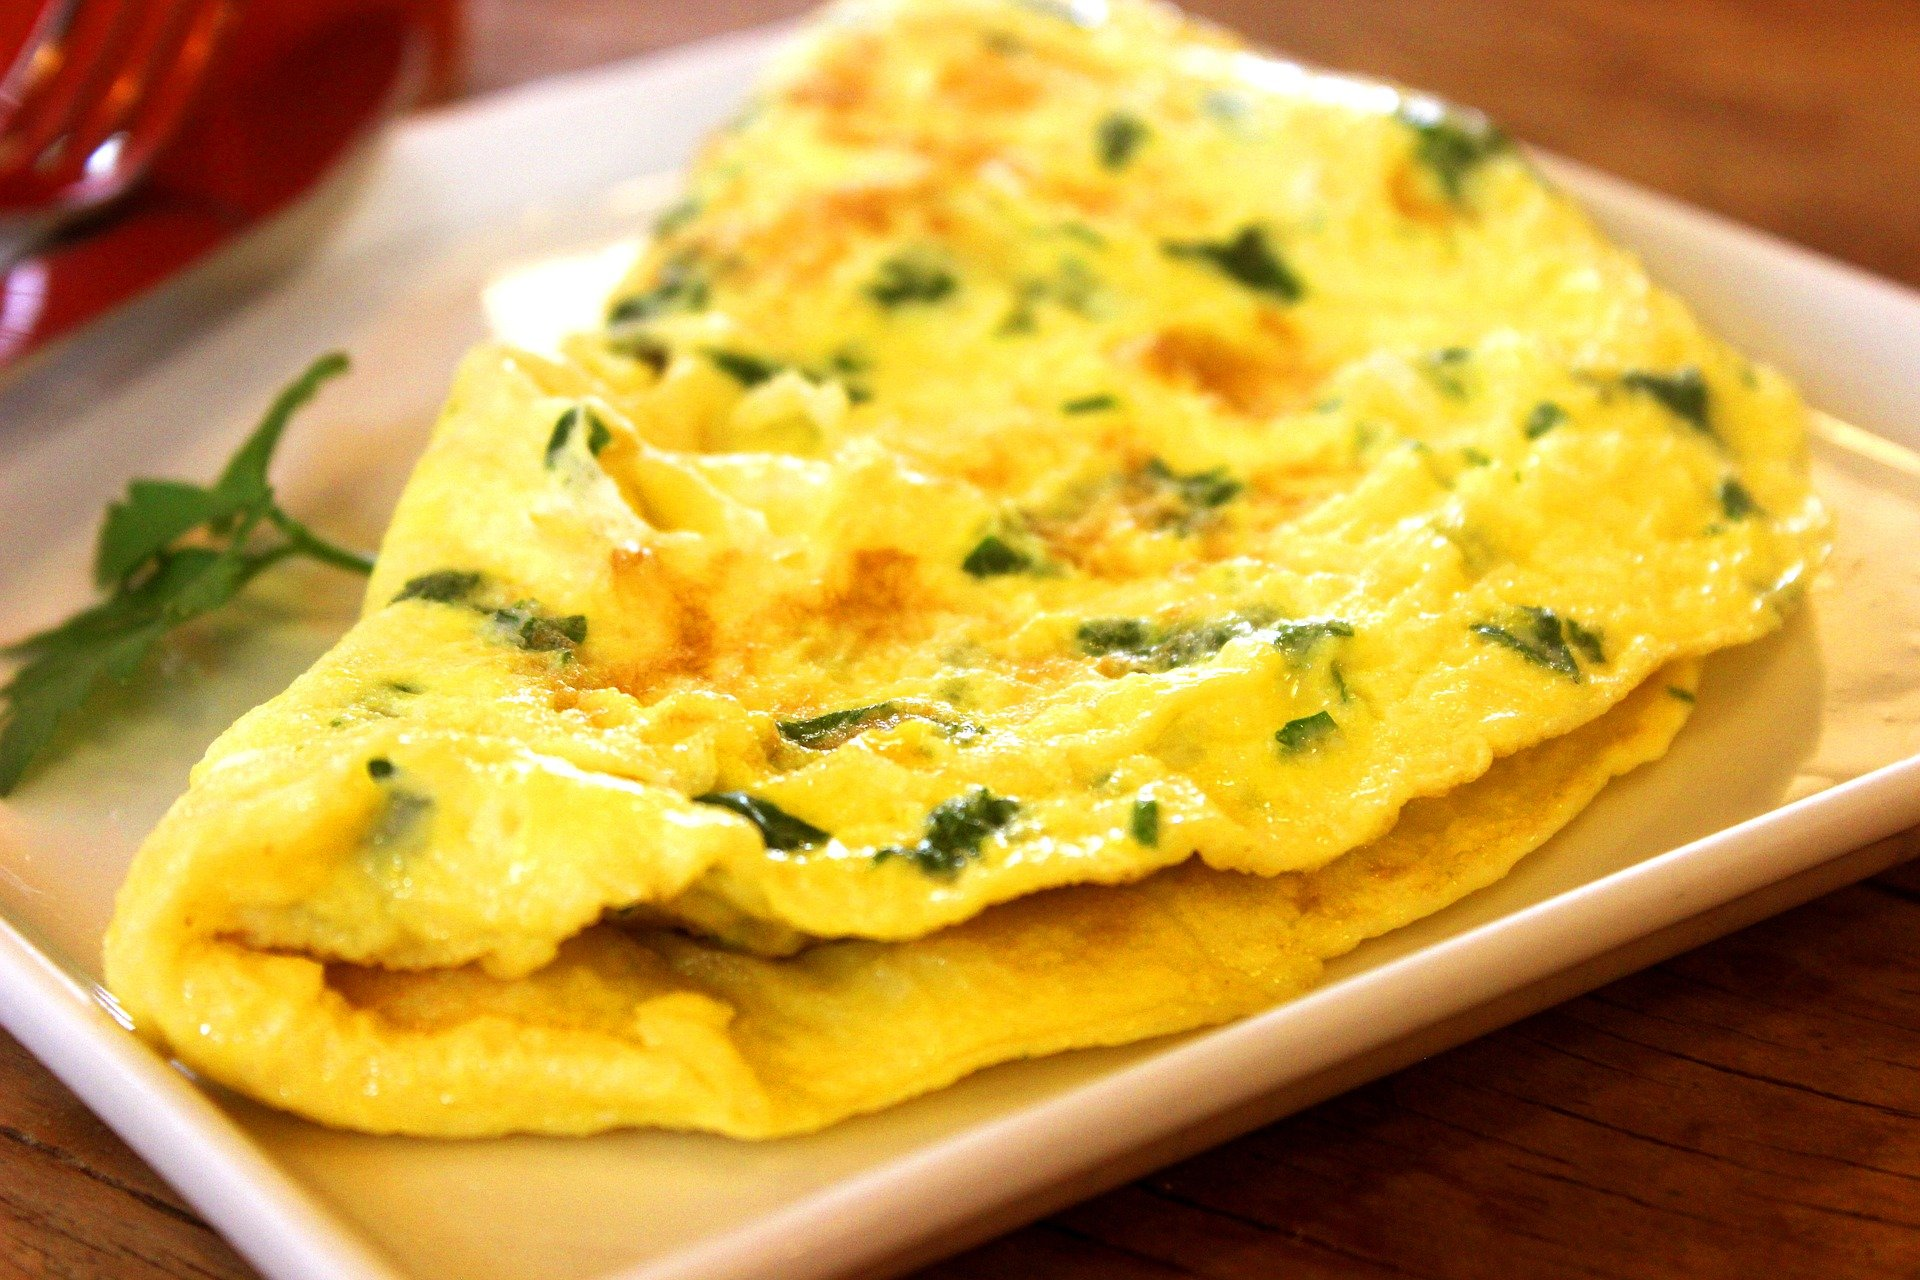 A square white plate with a folded egg omelette with herbs